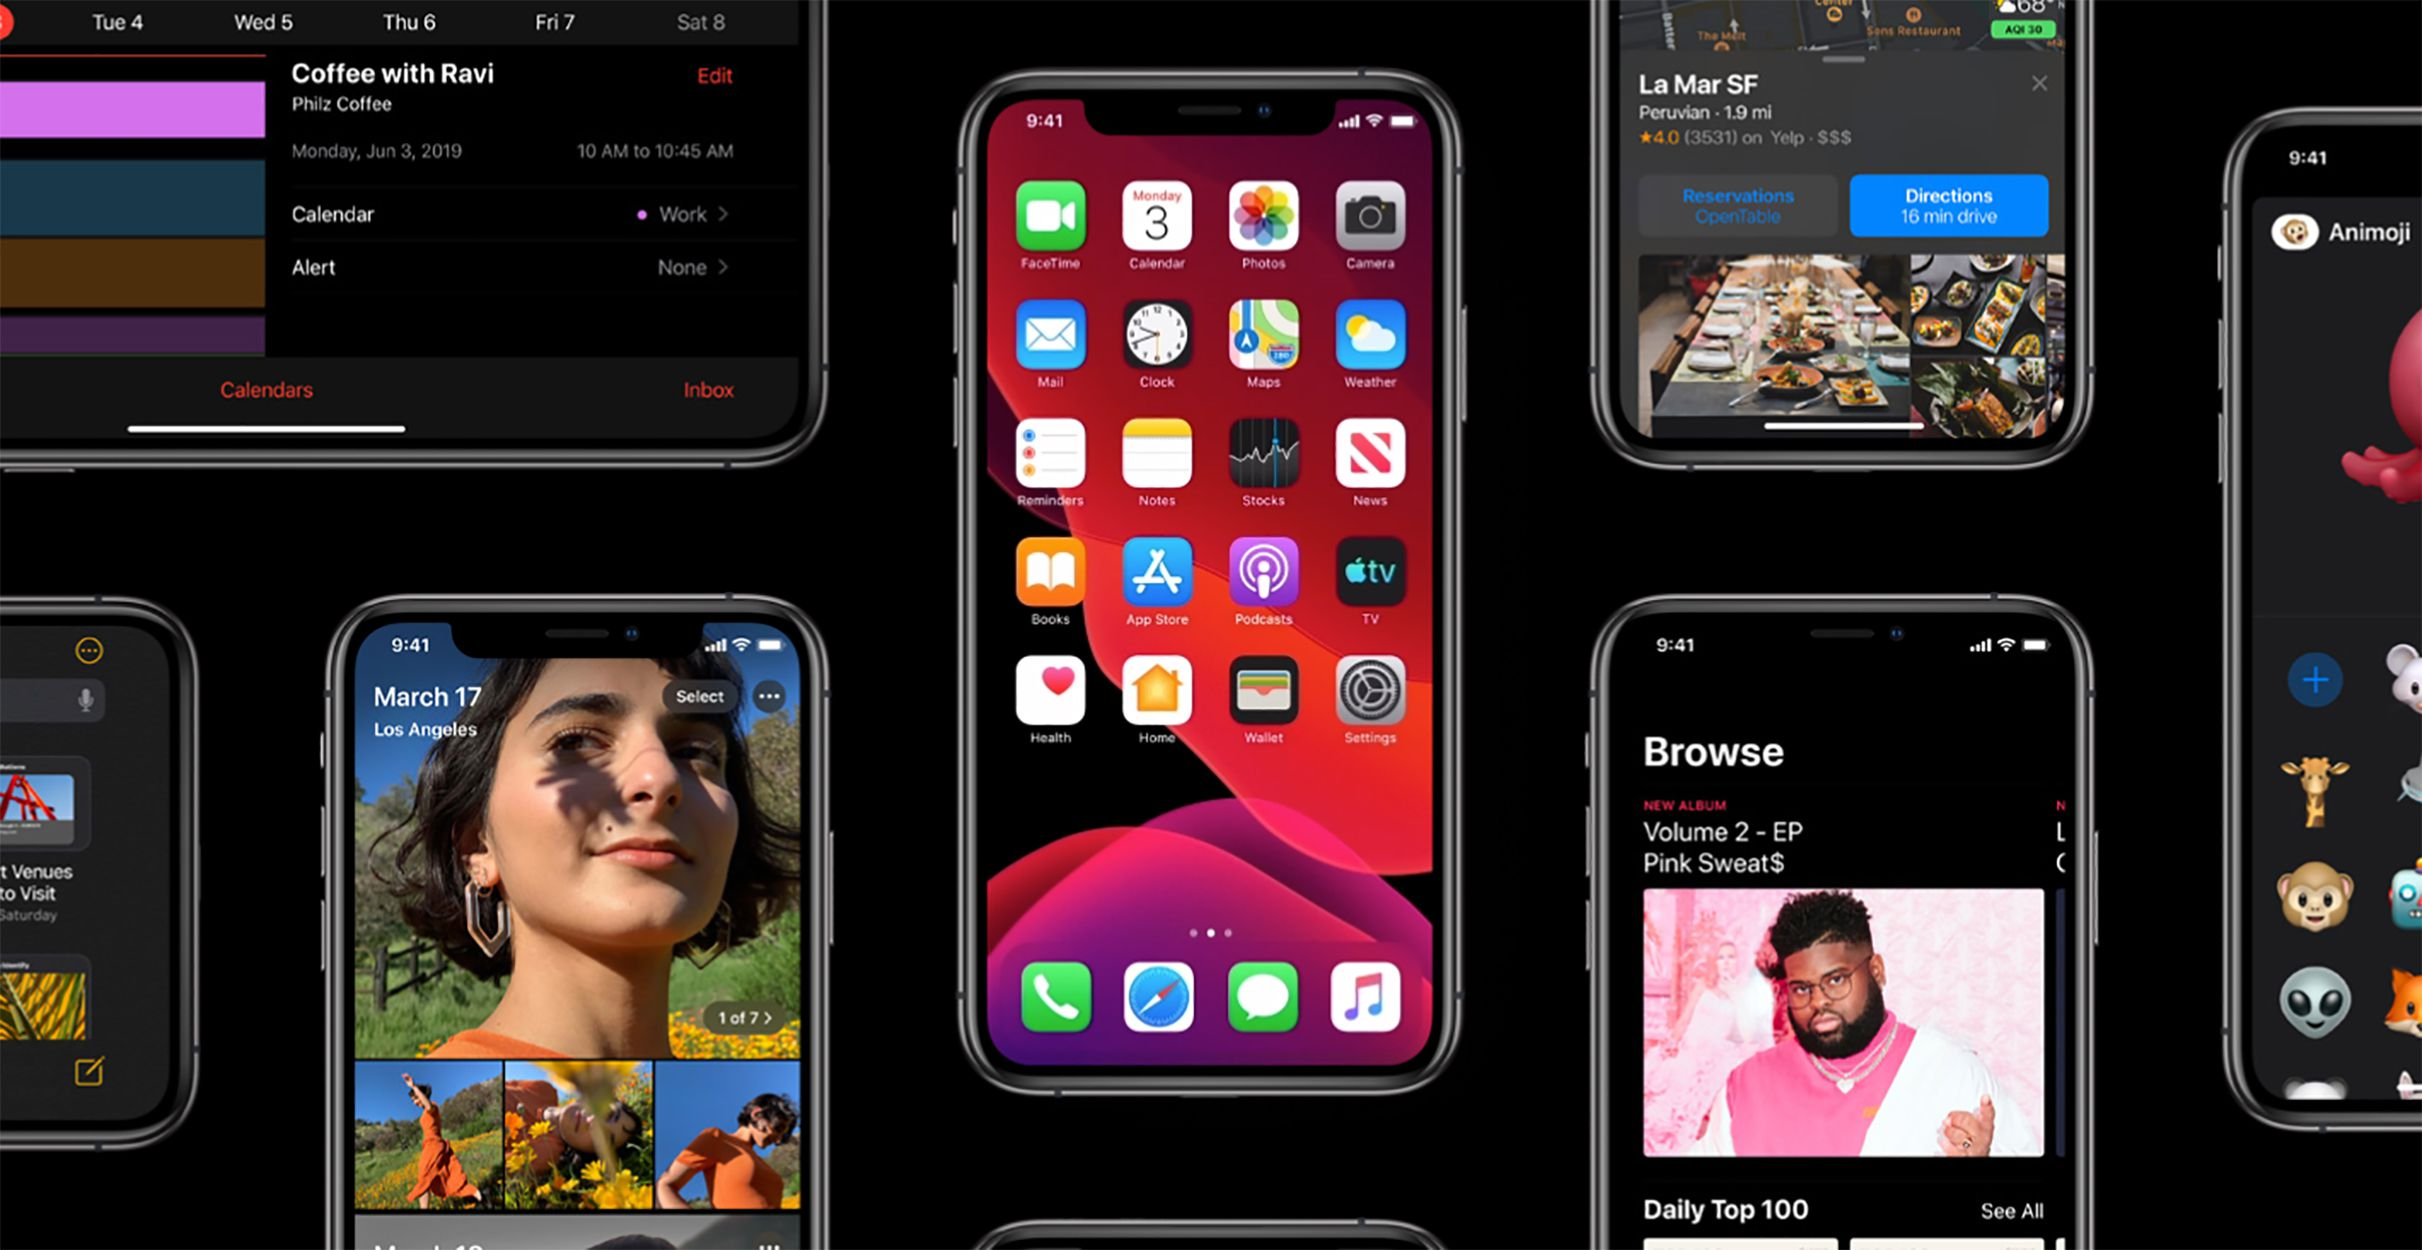 All Things iOS cover image